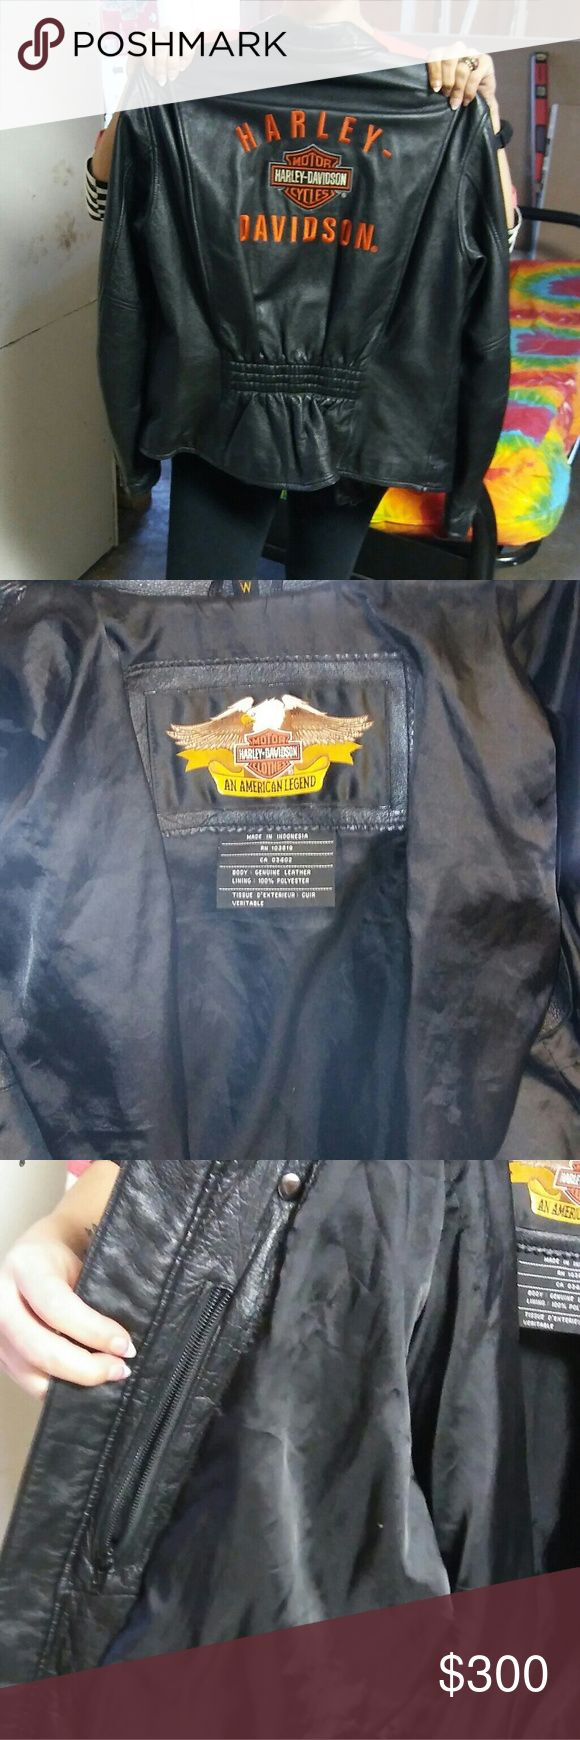 Ladies Medium real Harley-Davidson leather jacket Is a Harley Davidson jacket it is got inside pocket fits, the inside liner is polyester it has the original silver Harley-Davidson mark on the front of it and you can see by the pictures that it is authentic you can see the numbers. Any lady would love to have it. Harley-Davidson Jackets & Coats